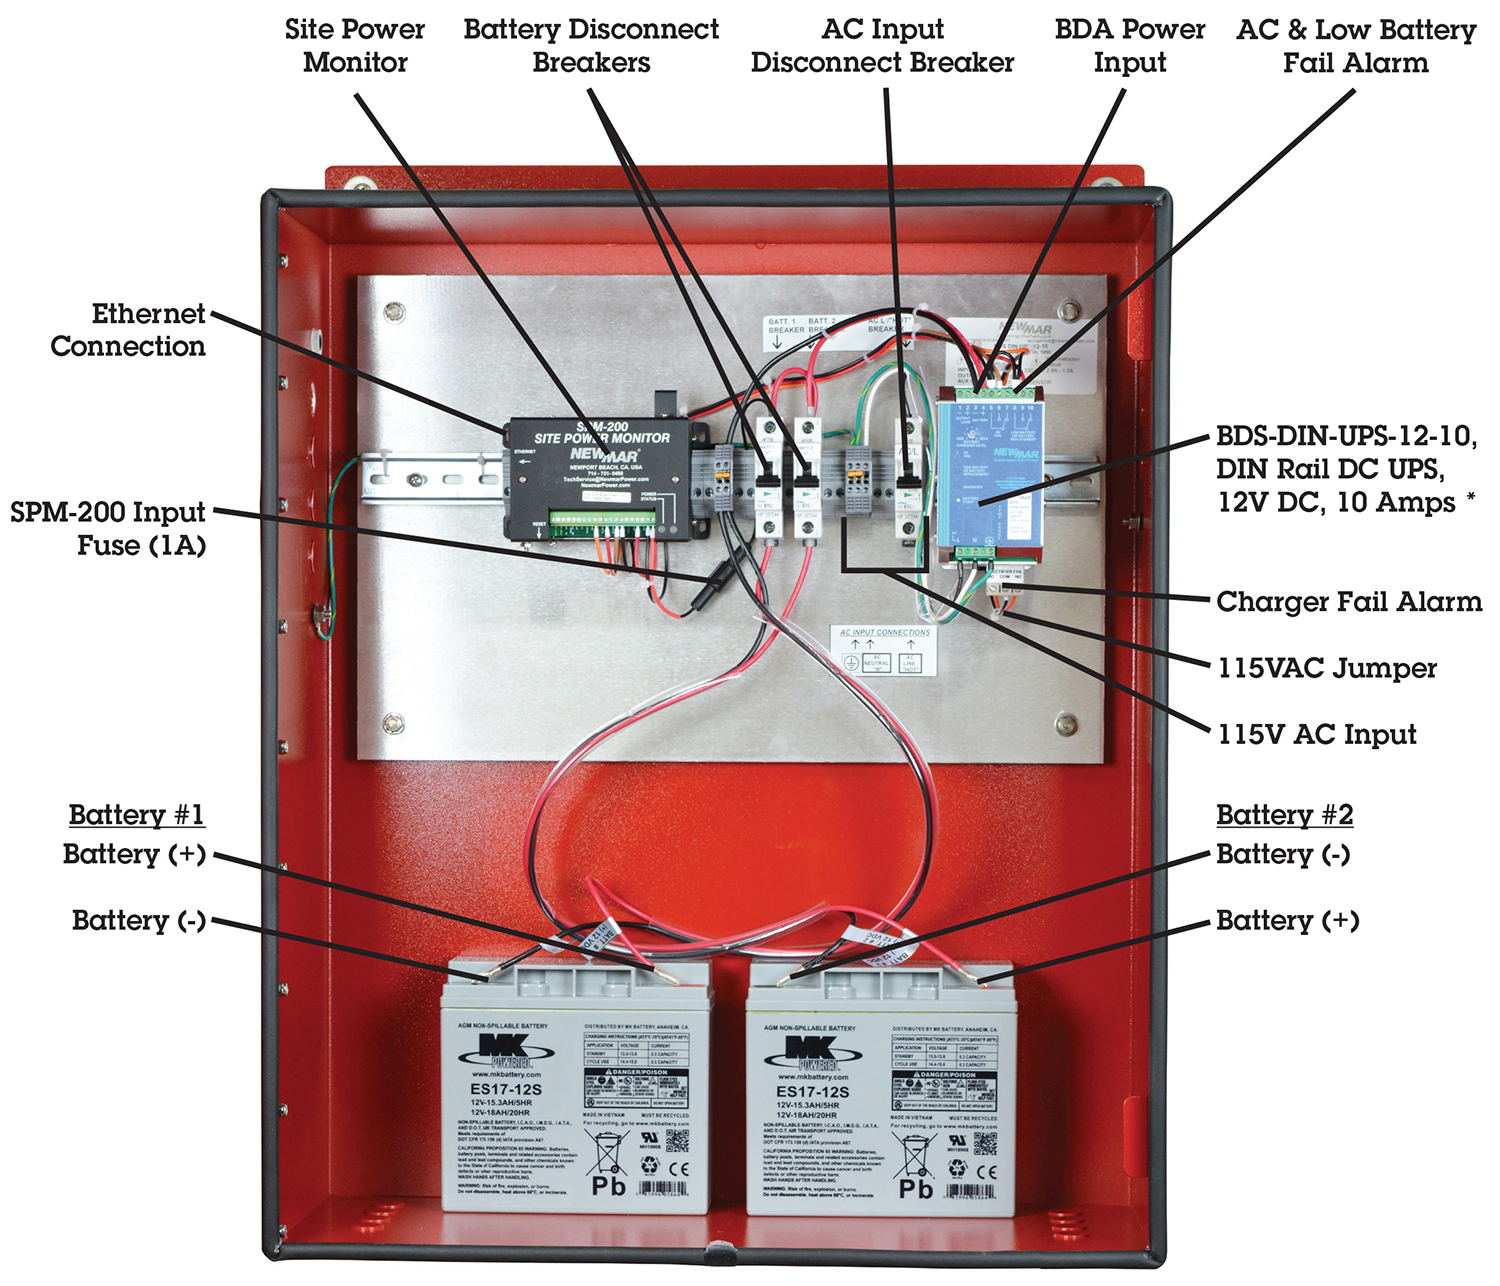 Dc Power Enclosures For Nfpa 1221 In Building Standards 12v 12 Volt Battery Bus Bar Wiring Diagram Public Safety Das Pe Series Vdc